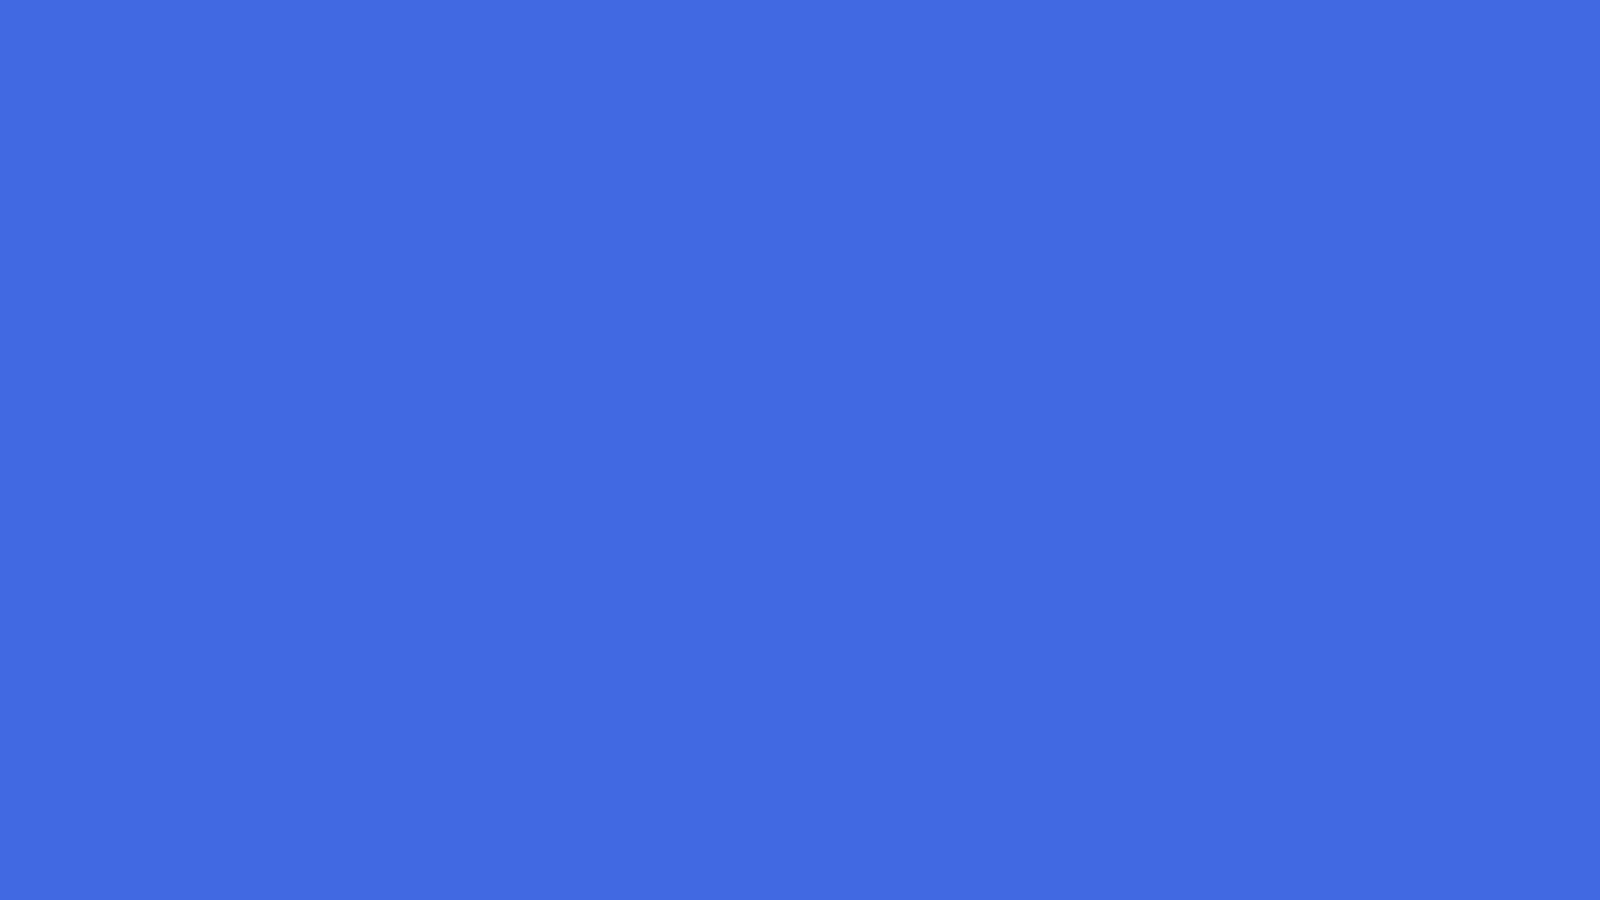 solid-blue-background-wallpaper-1